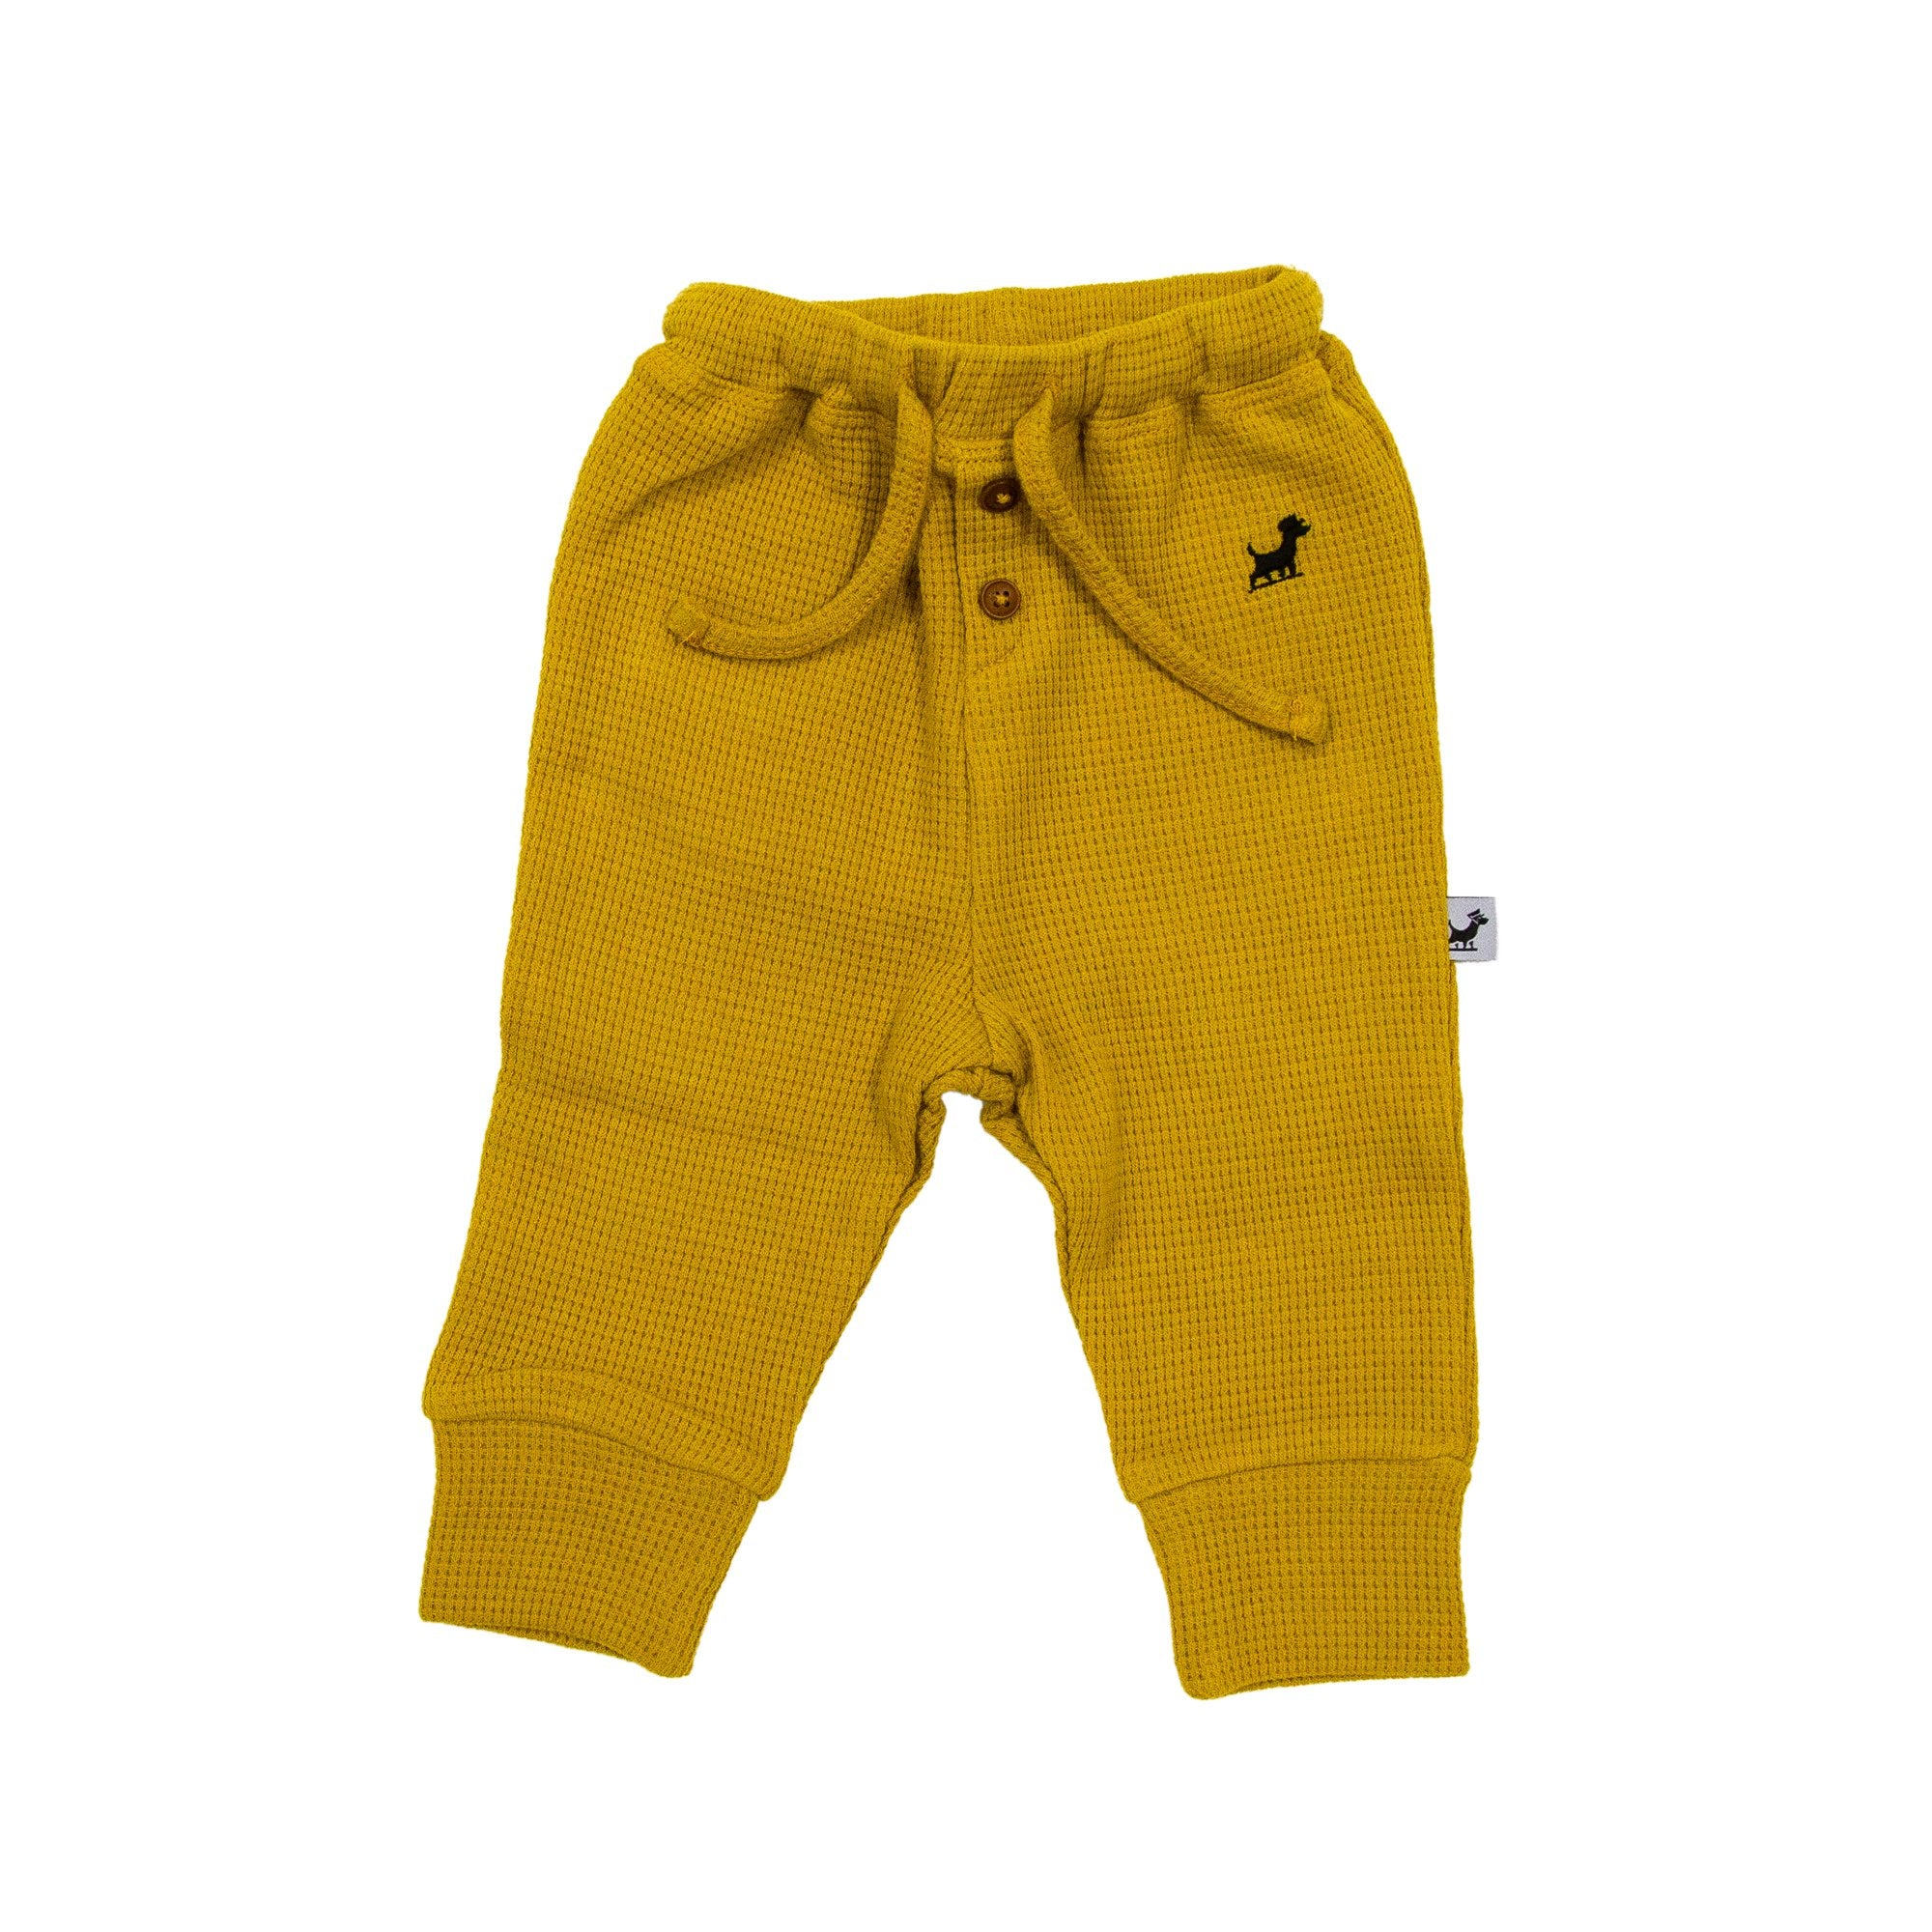 Waffle Organic Cotton Pants - Golden Nugget